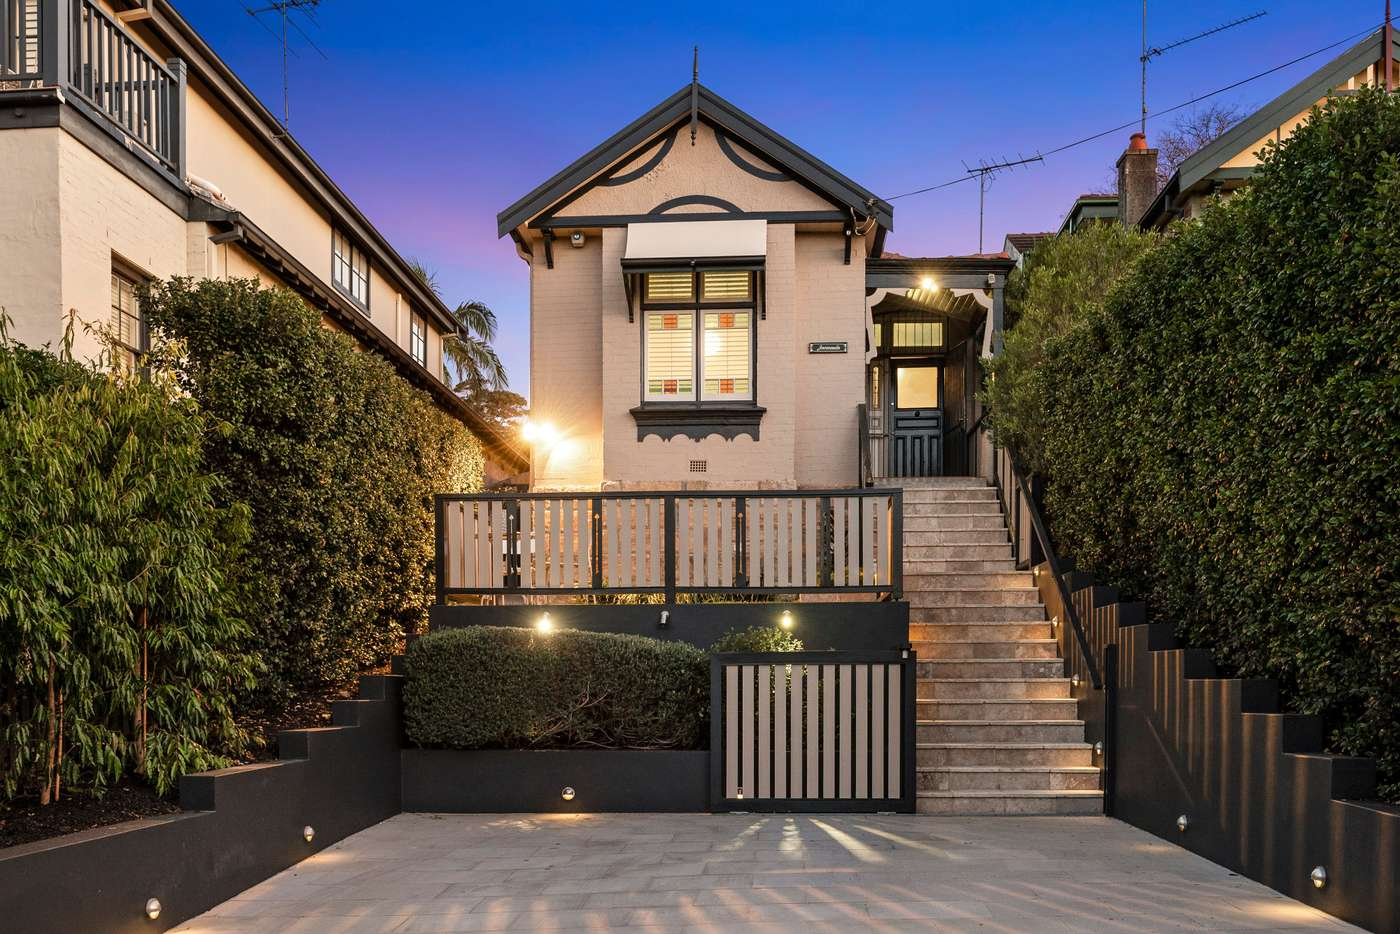 Main view of Homely house listing, 48 Dalton Road, Mosman NSW 2088